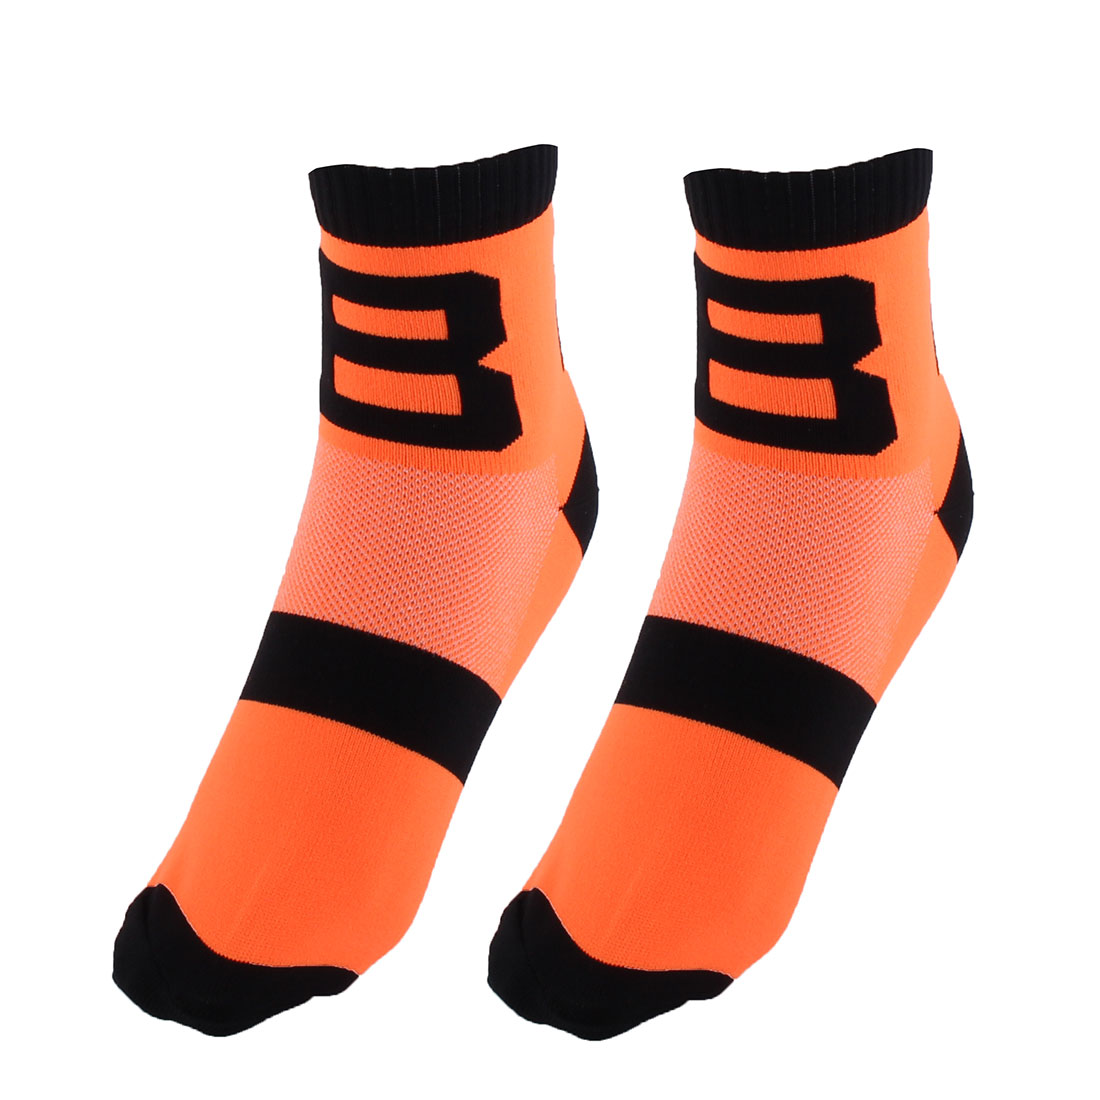 R-BAO Authorized Bicycle Football Mountain Bike Cotton Blend Compression Sports Cycling Socks Orange 2 Pairs